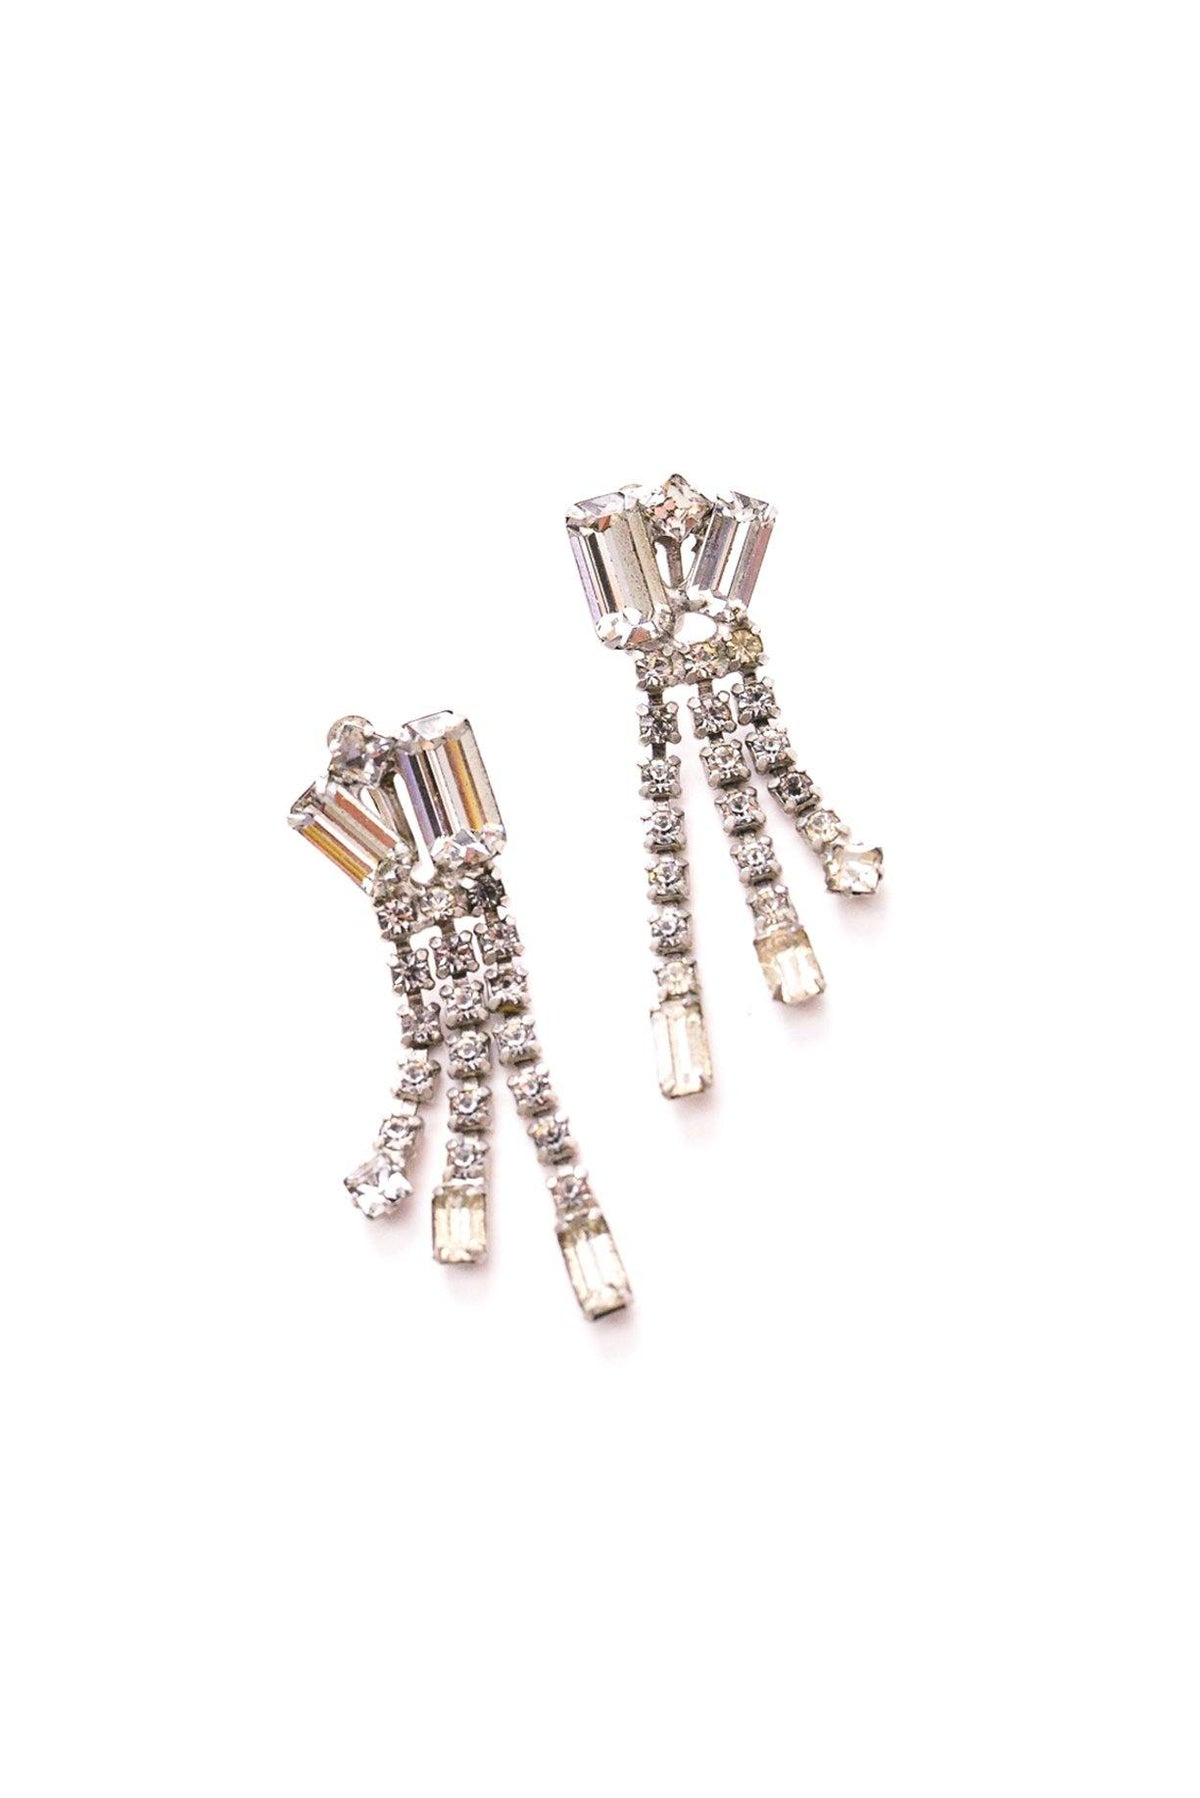 Vintage rhinestone fringe drop earrings from Sweet & Spark.